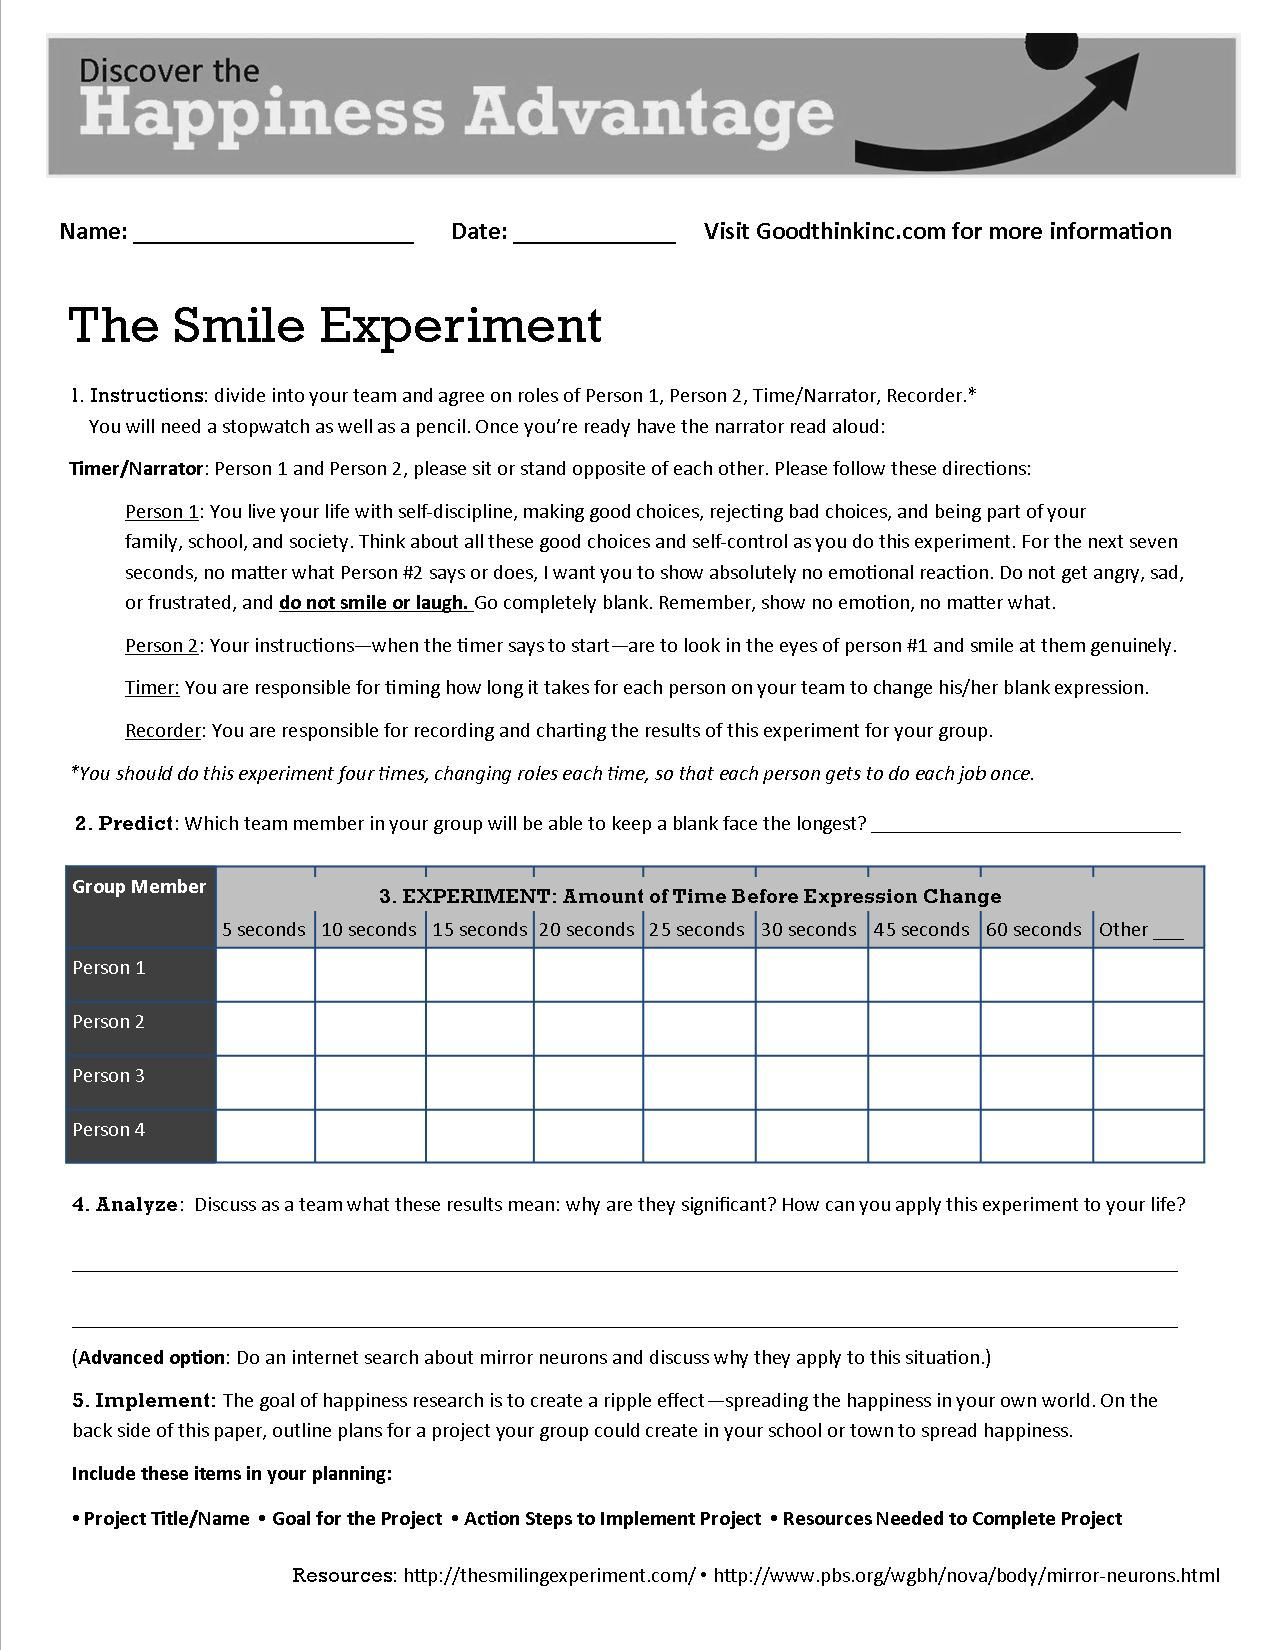 worksheet Cbt Therapy Worksheets this is goodthinks smile experiment worksheet that turns our test into a classroom or